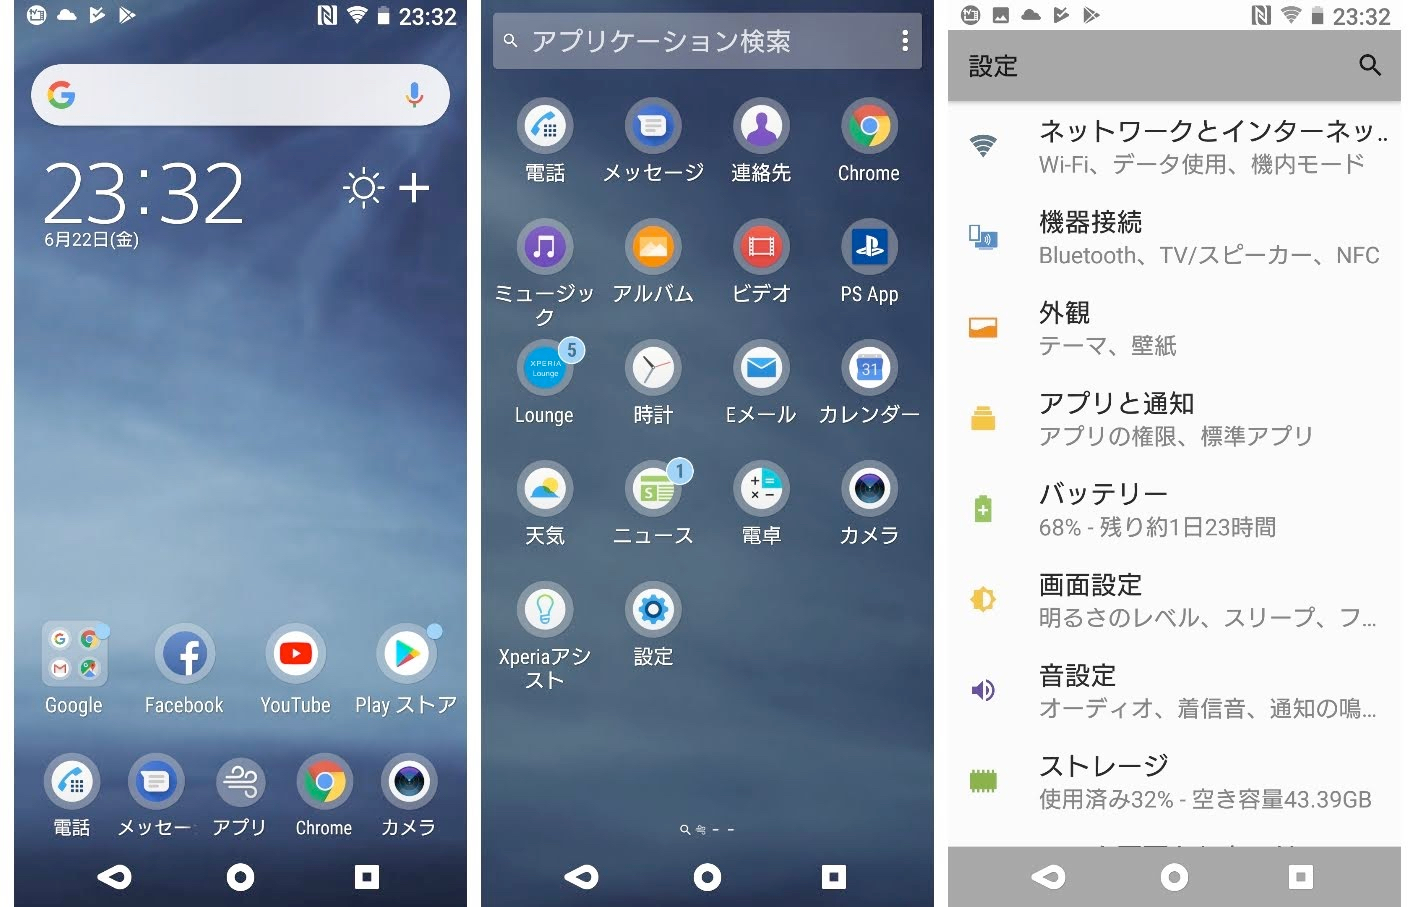 Sony Mobile 大自然をモチーフにしたxperiaテーマシリーズ Xperia The Four Elements をリリース Juggly Cn